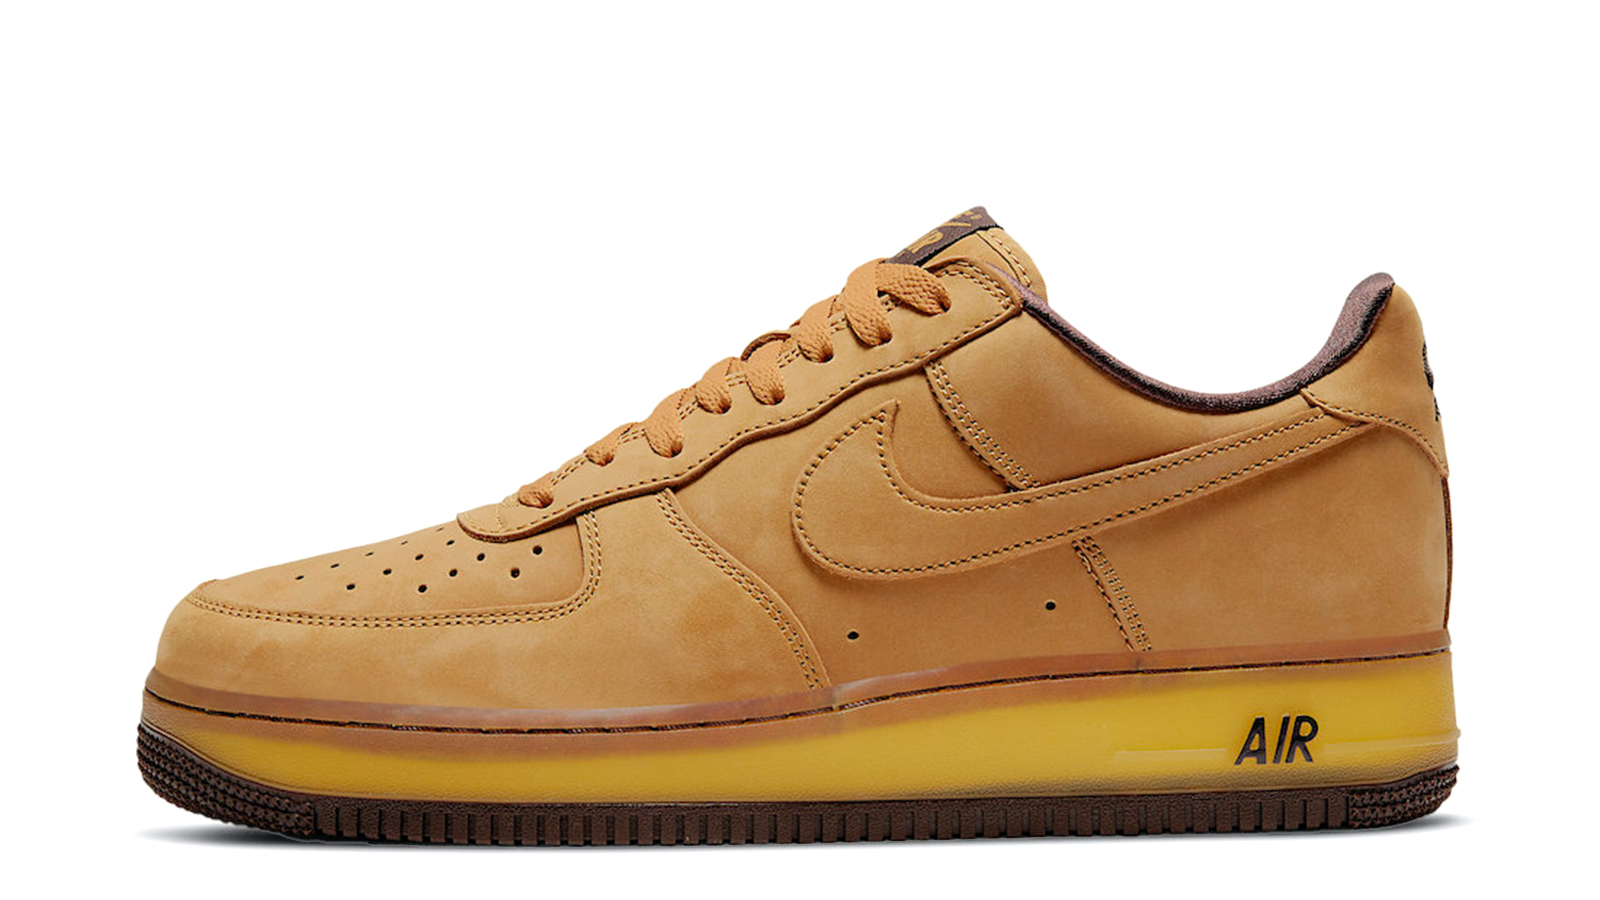 Nike Air Force 1 Wheat Mocha DC7504-700